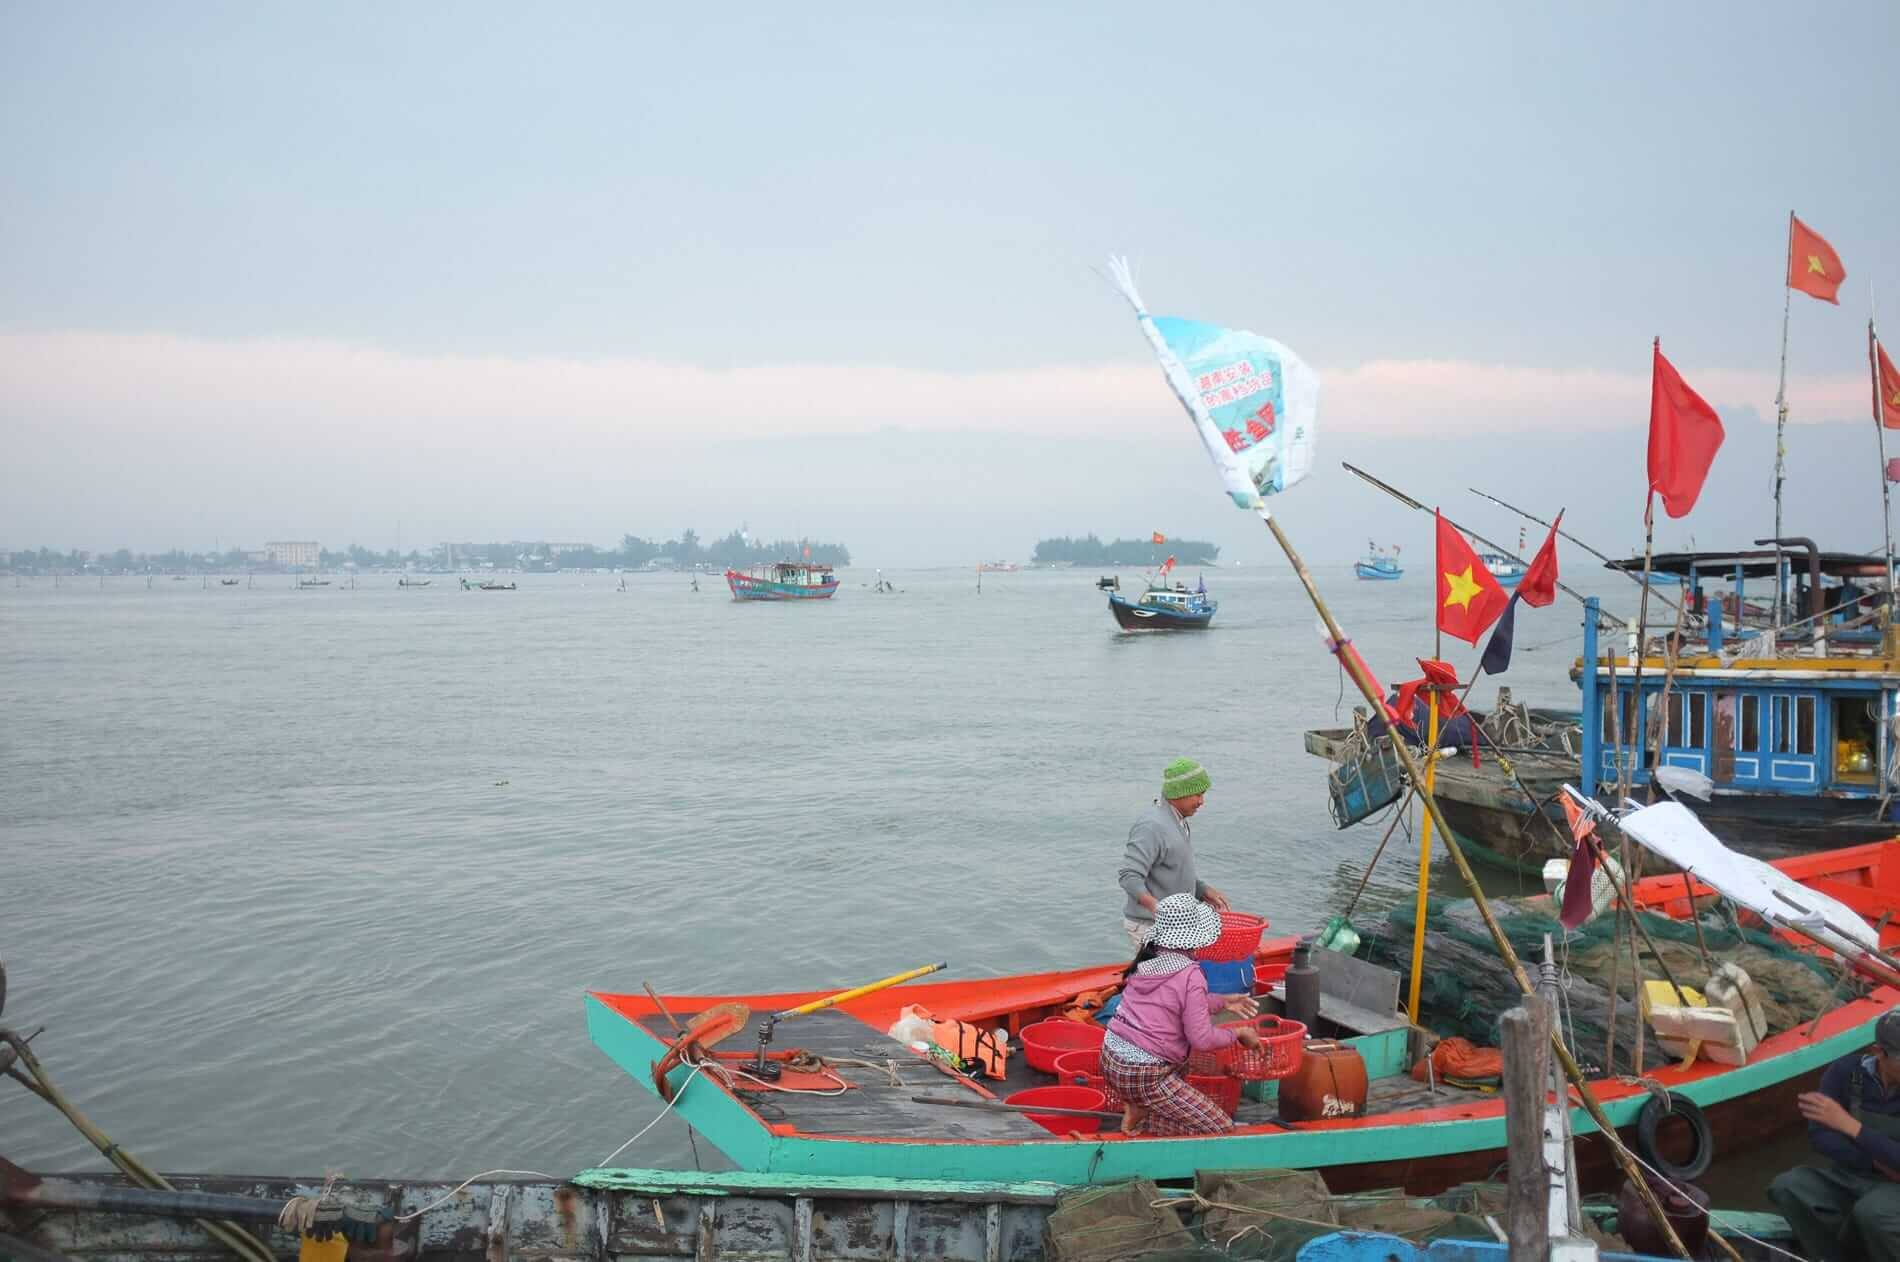 the best time to visit Hoi An is when Vietnamese boats showcase their flagss